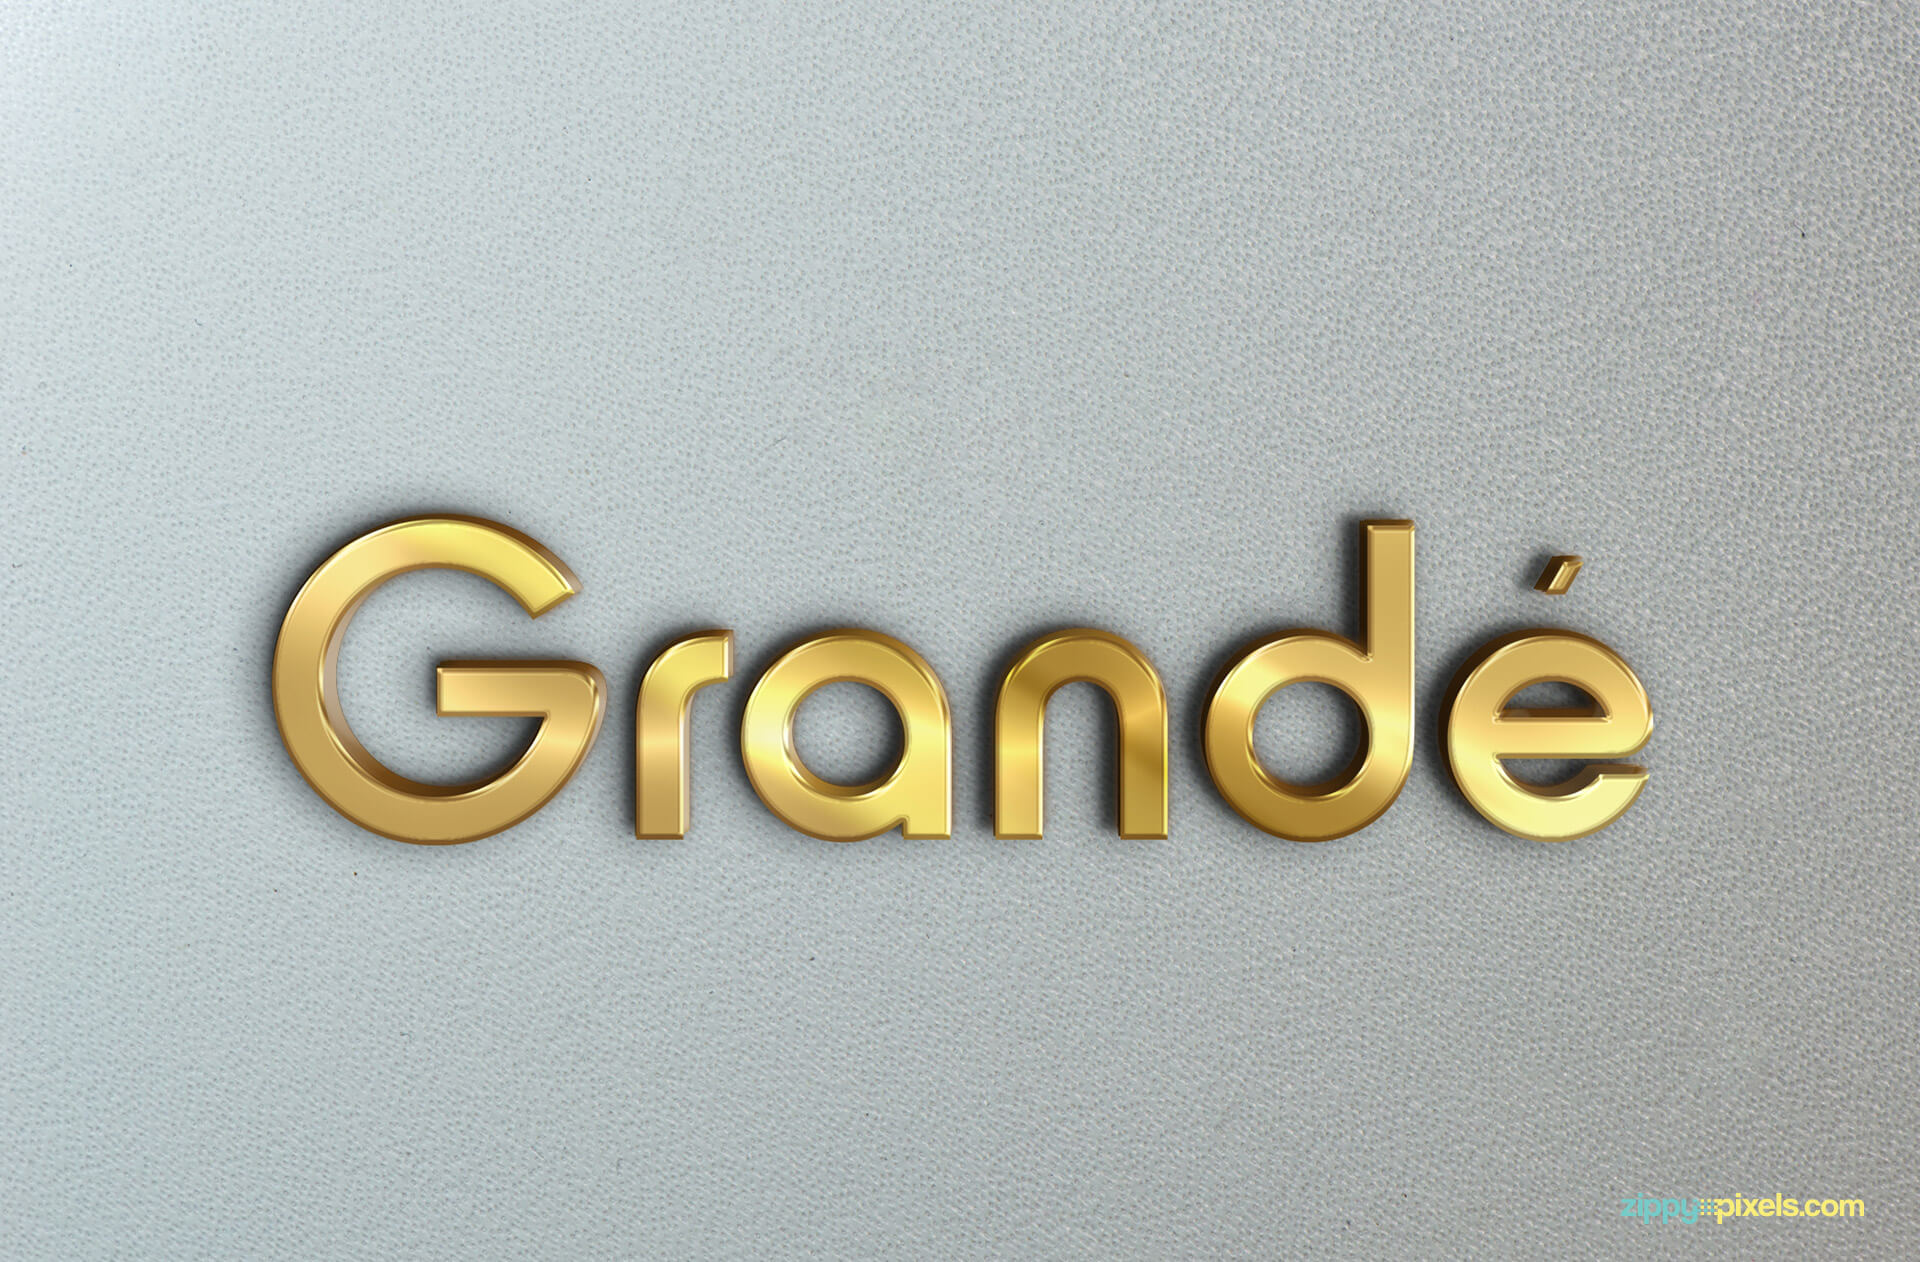 3d logo signage wall mock up free download